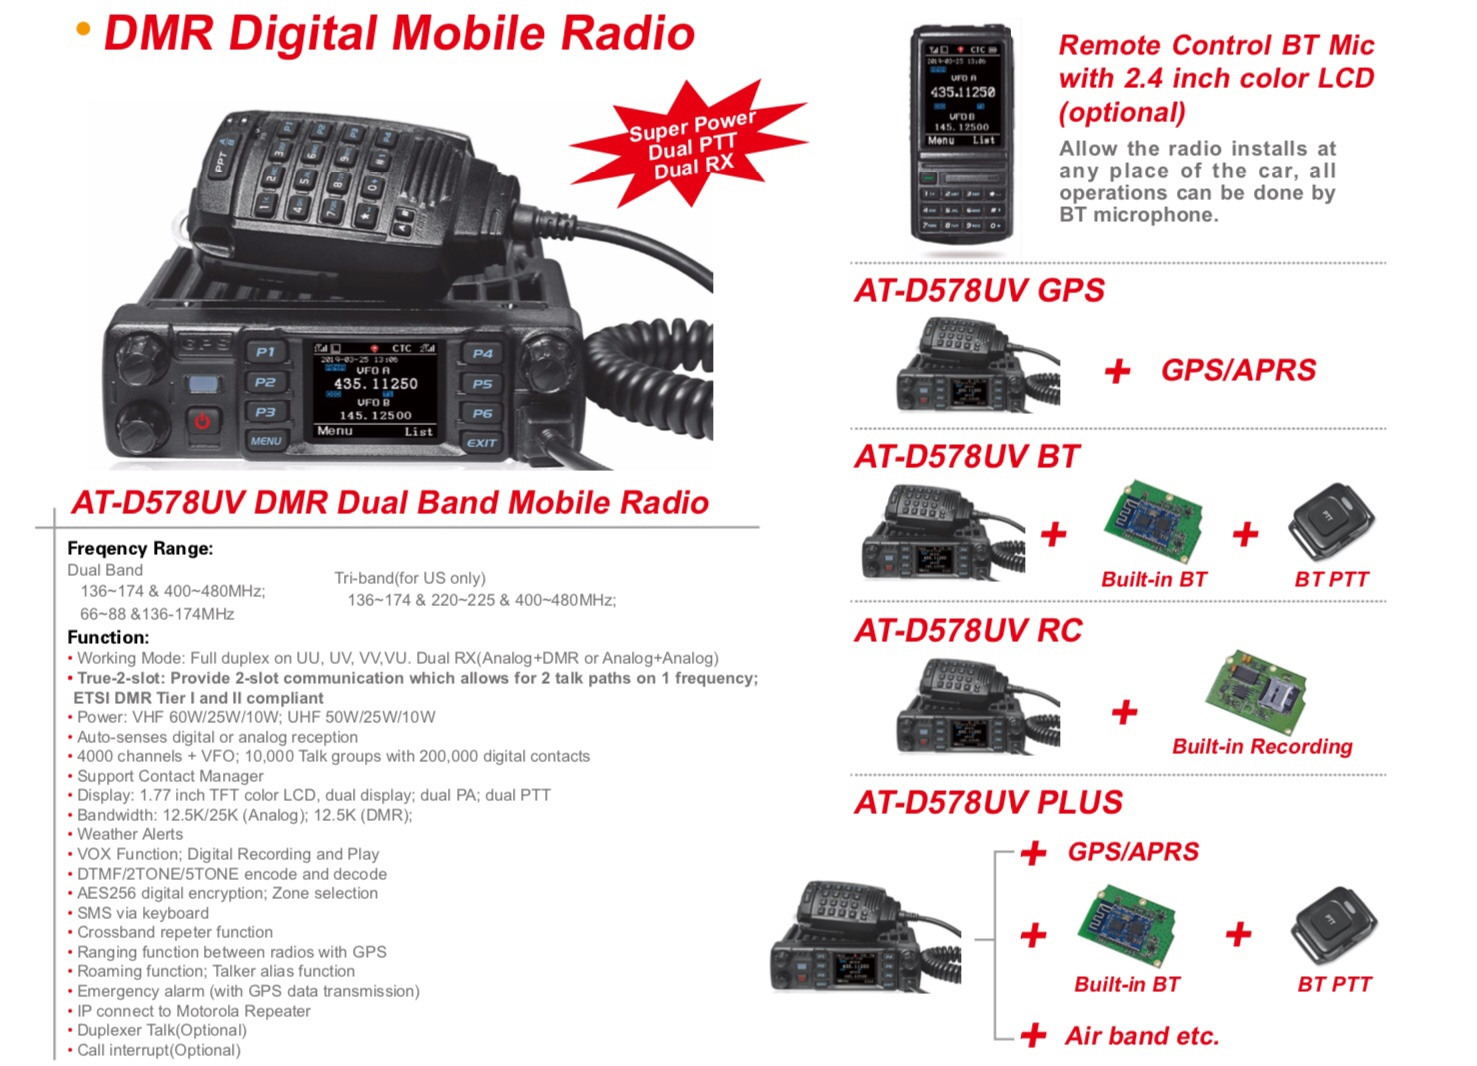 DMR NEWS* AT-D578UV Options | Simonthewizard